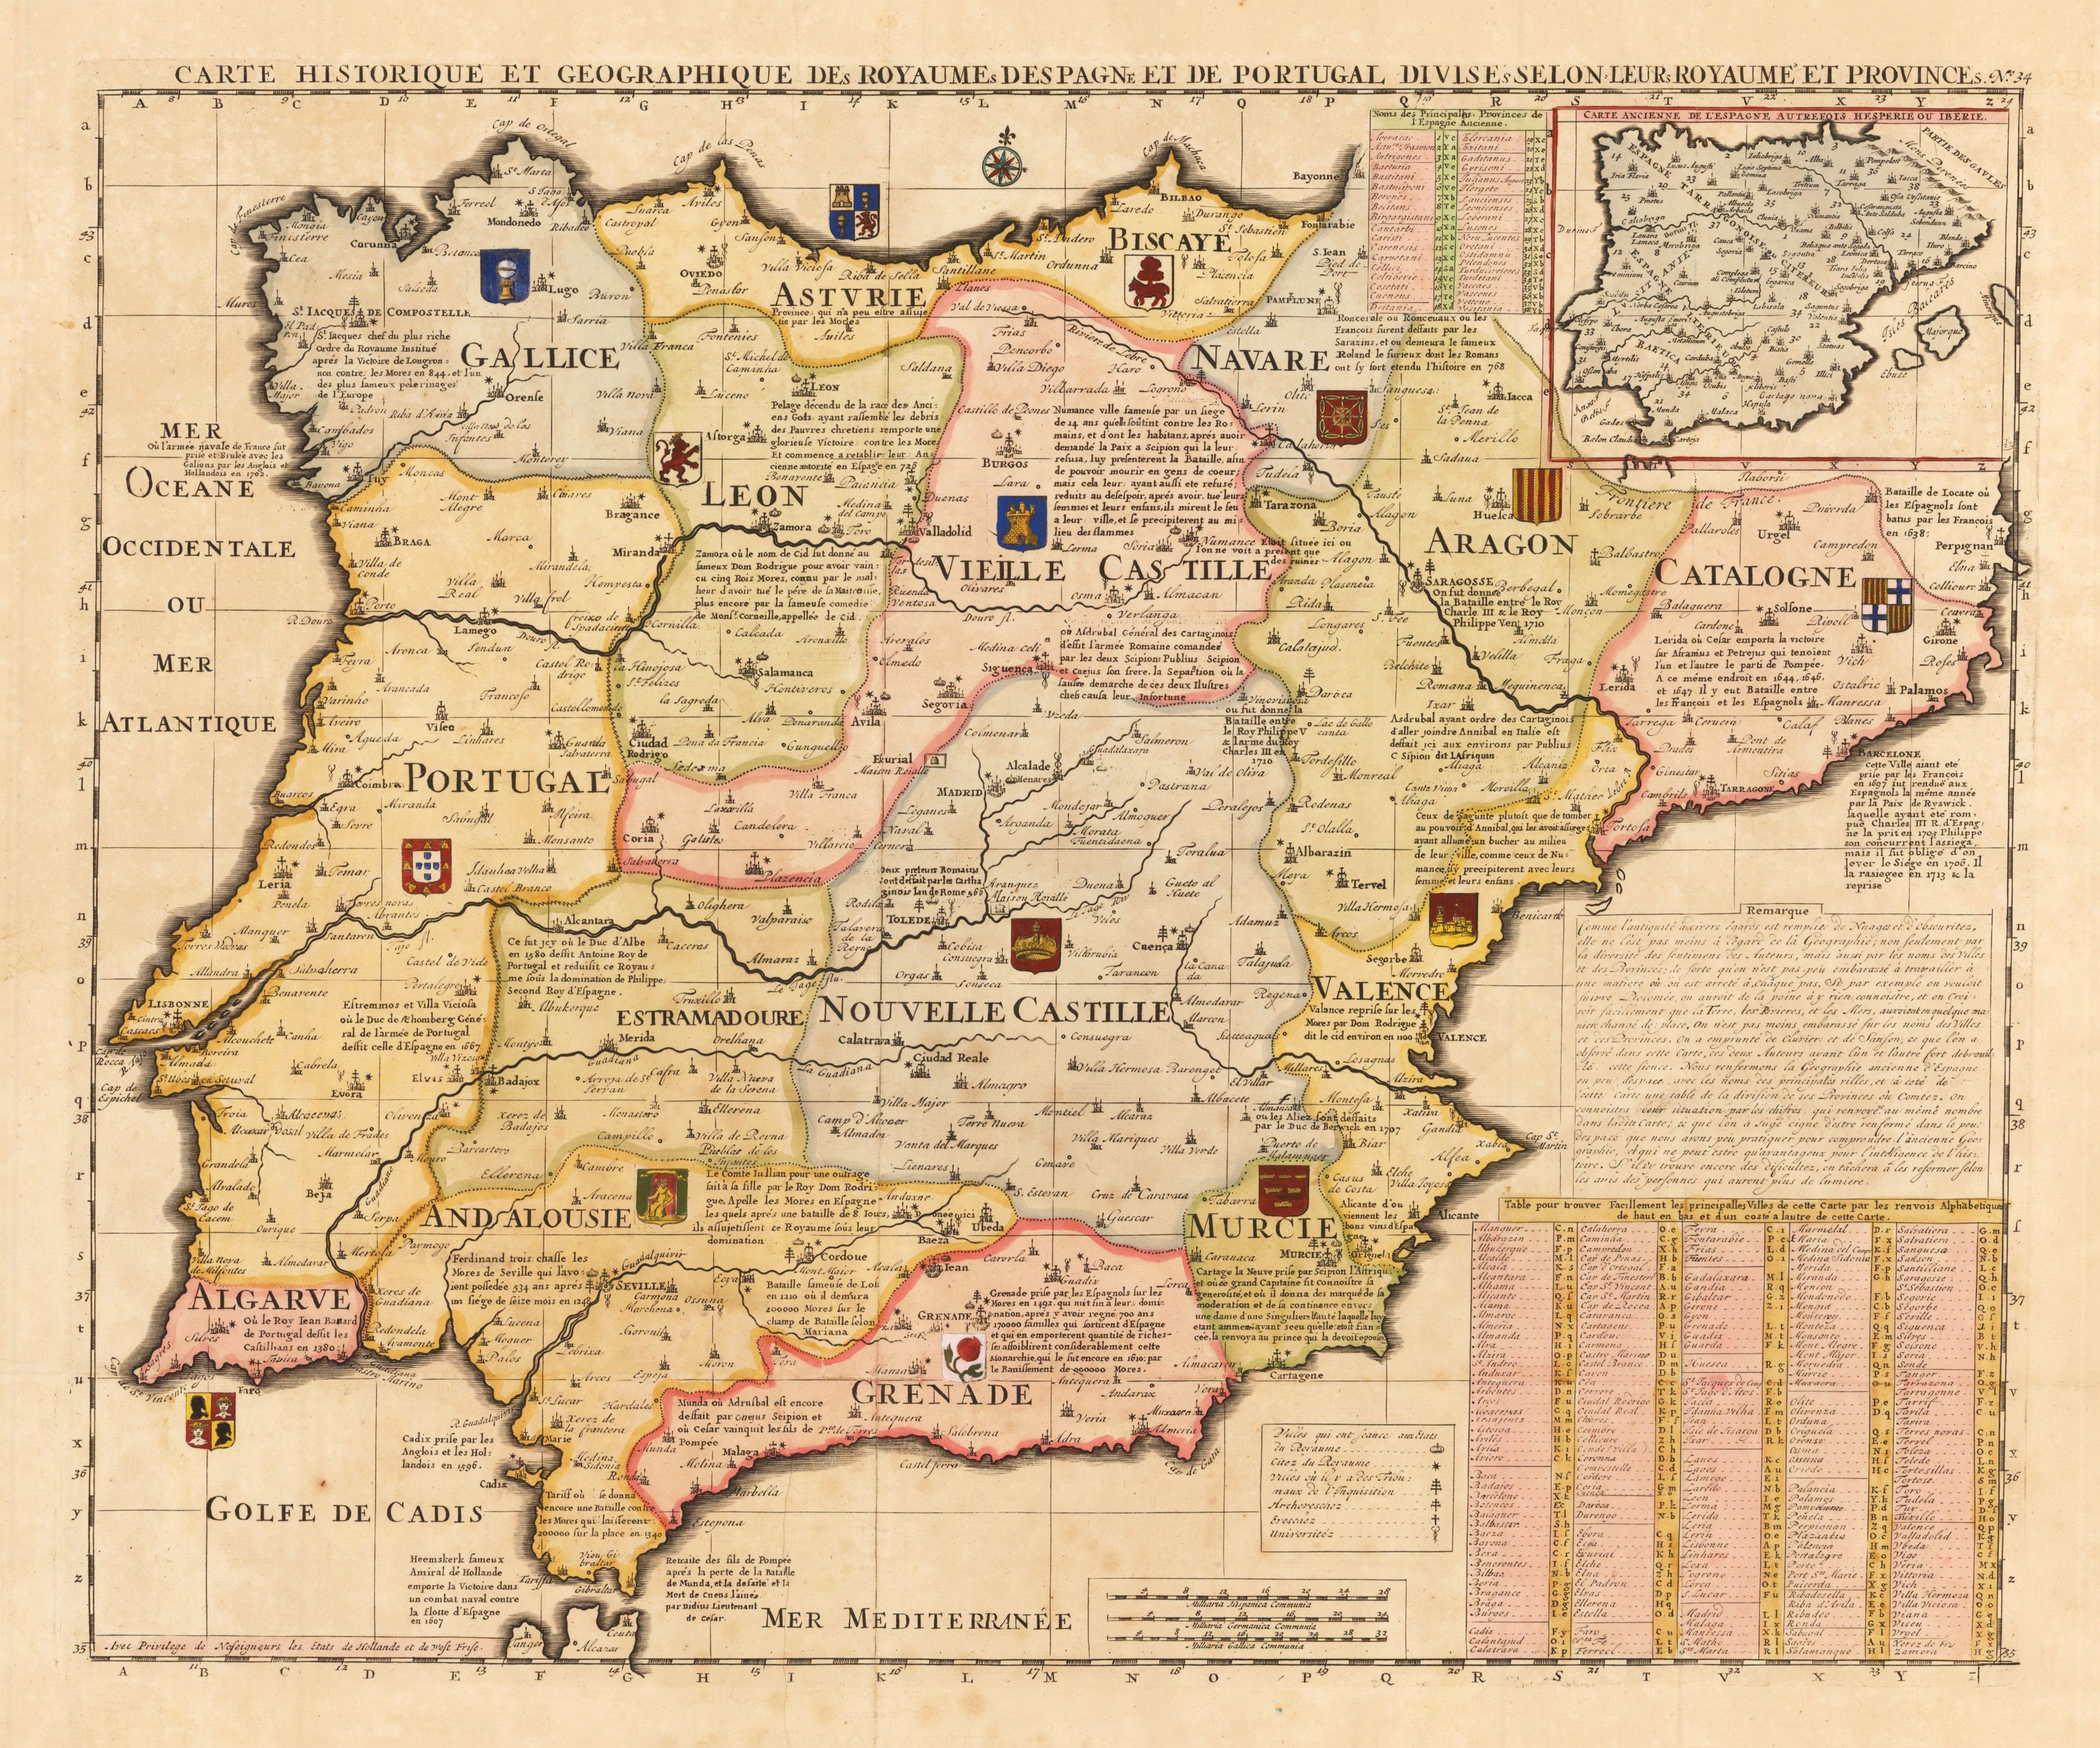 An Exquisite Map Of The Iberian Peninsula And Its Provinces Drawn - Portugal map iberian peninsula